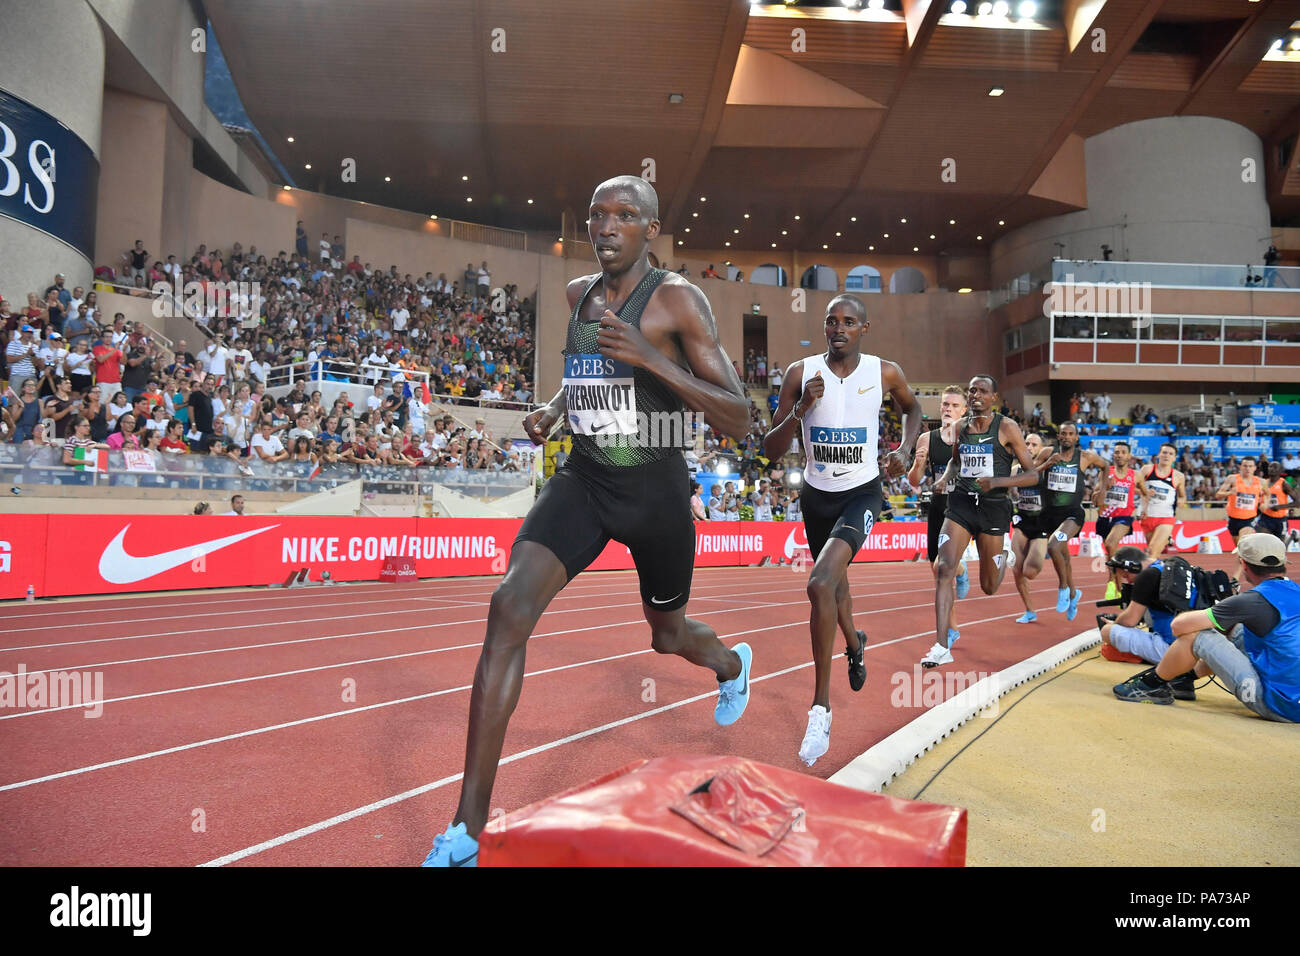 Fontvieille. 20th July, 2018. Timothy Cheruiyot (front) of Kenya competes during the men's 1500m match at the IAAF Diamond League athletics 'Herculis' meetings in Fontvieille, Monaco on July 20, 2018. Timothy Cheruiyot claimed the title in a time of 3:28.41. Credit: Chen Yichen/Xinhua/Alamy Live News - Stock Image